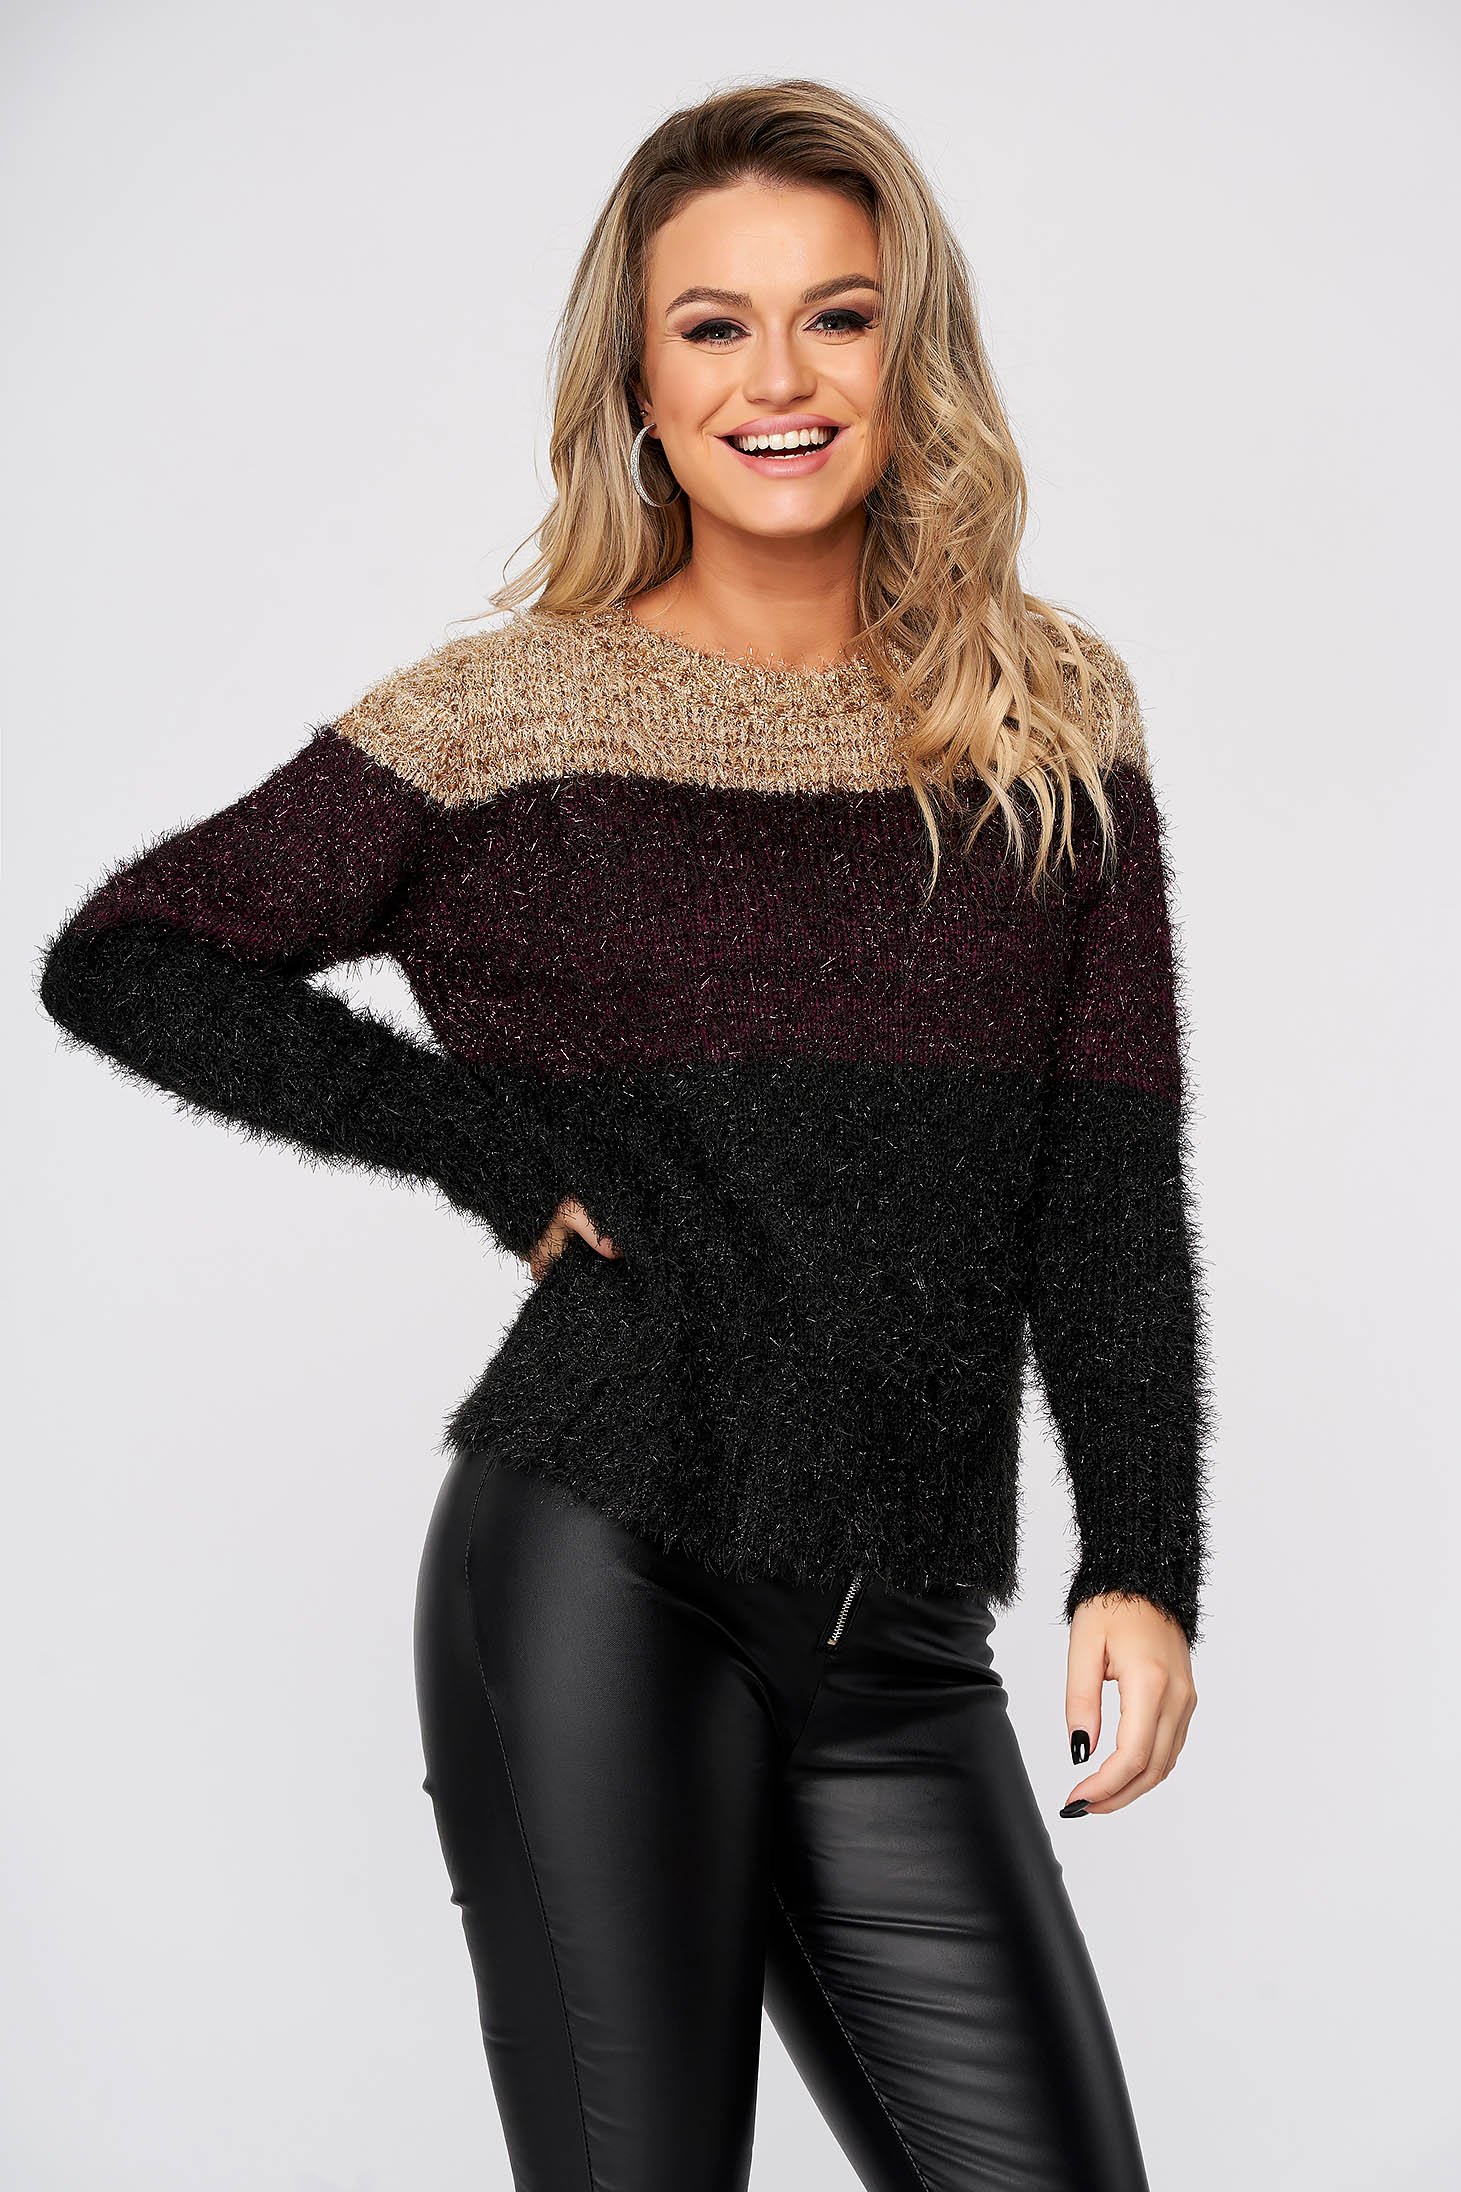 Black sweater casual flared knitted from fluffy fabric